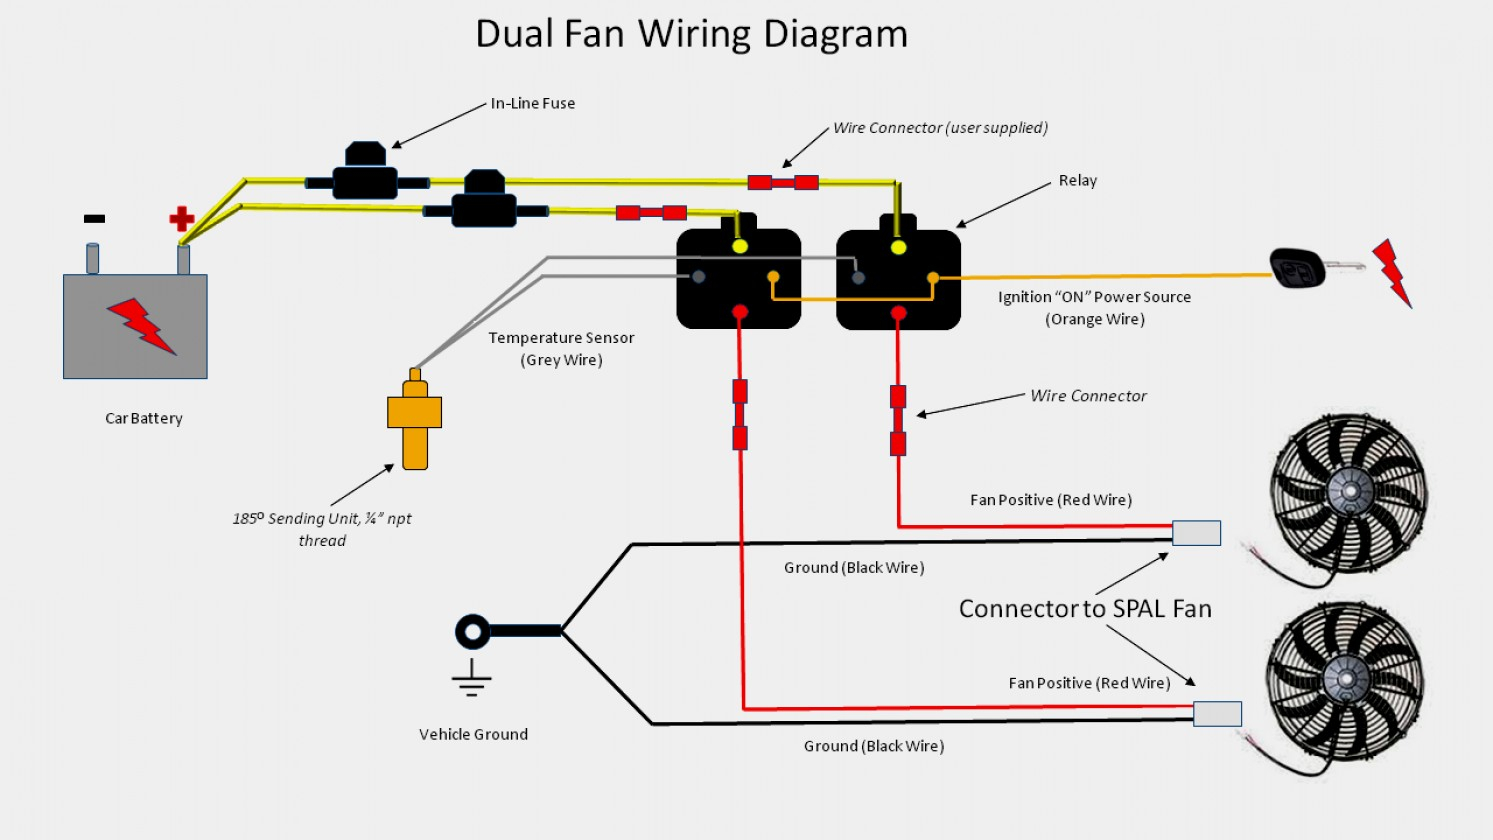 Flexalite Fan Wiring Diagram | Wiring Diagram - Electric Fans Wiring Diagram